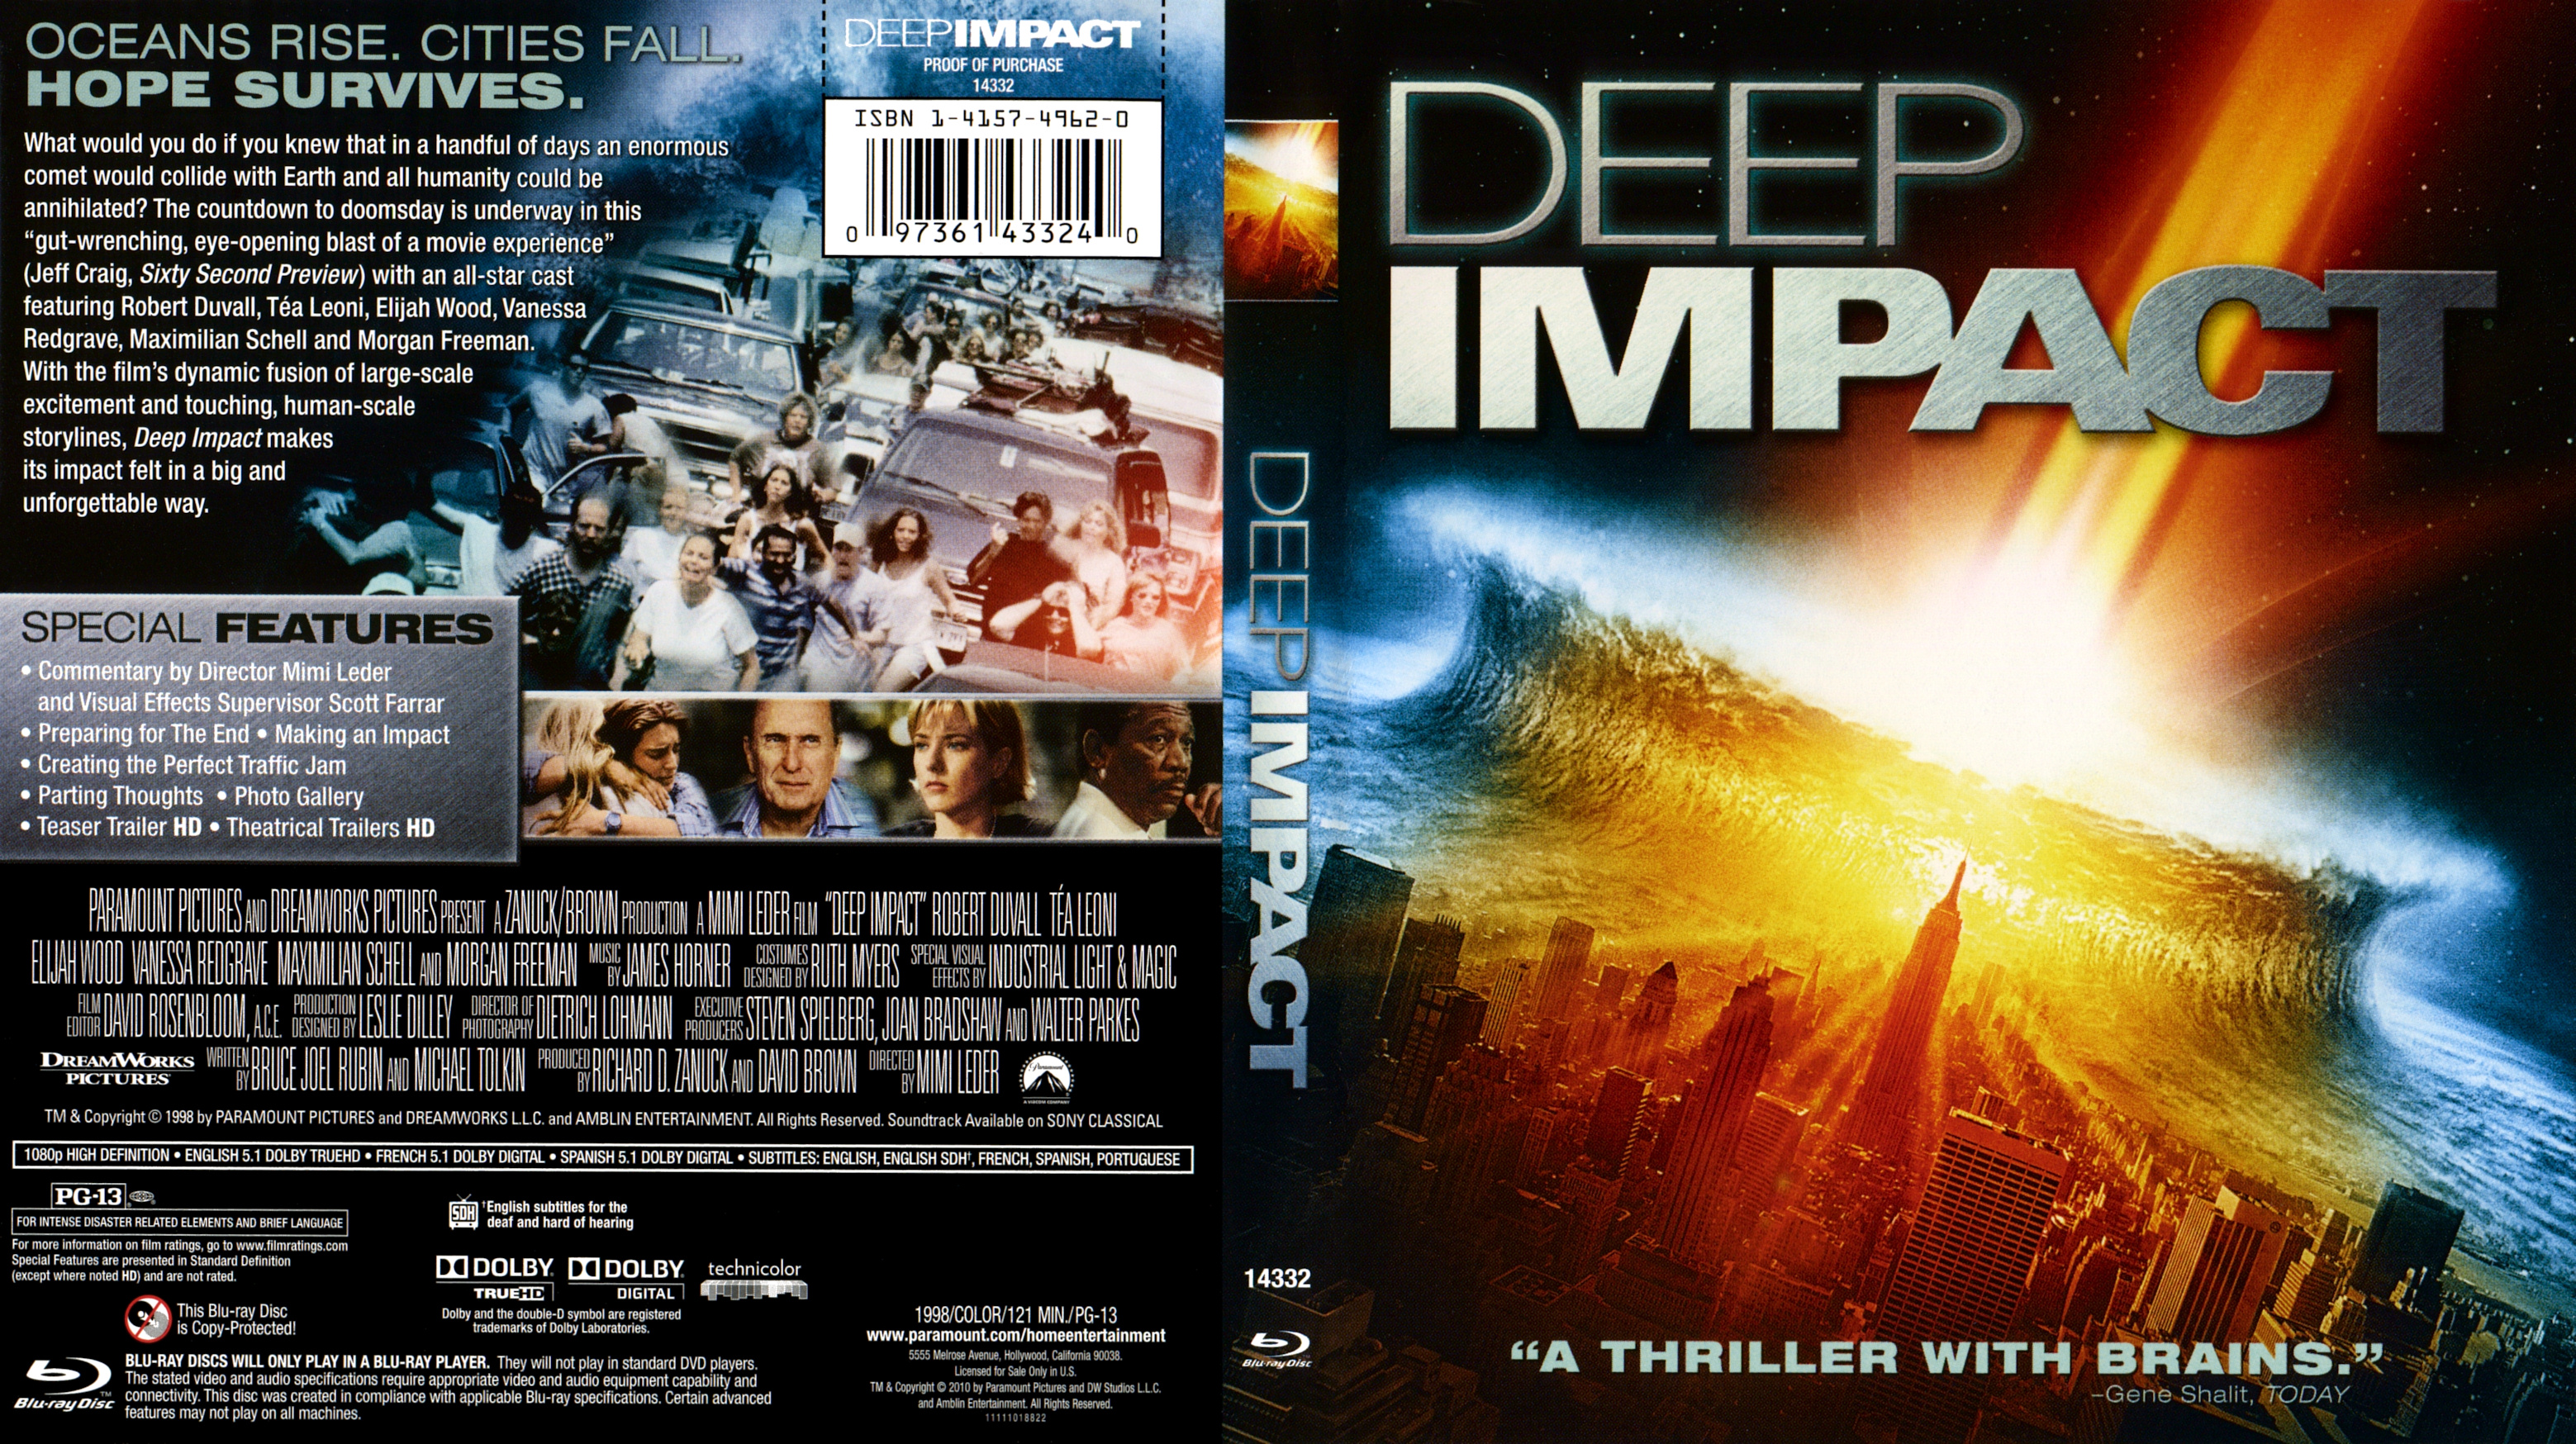 Deep Impact Blu Ray Blu Ray Covers Cover Century Over 500 000 Album Art Covers For Free